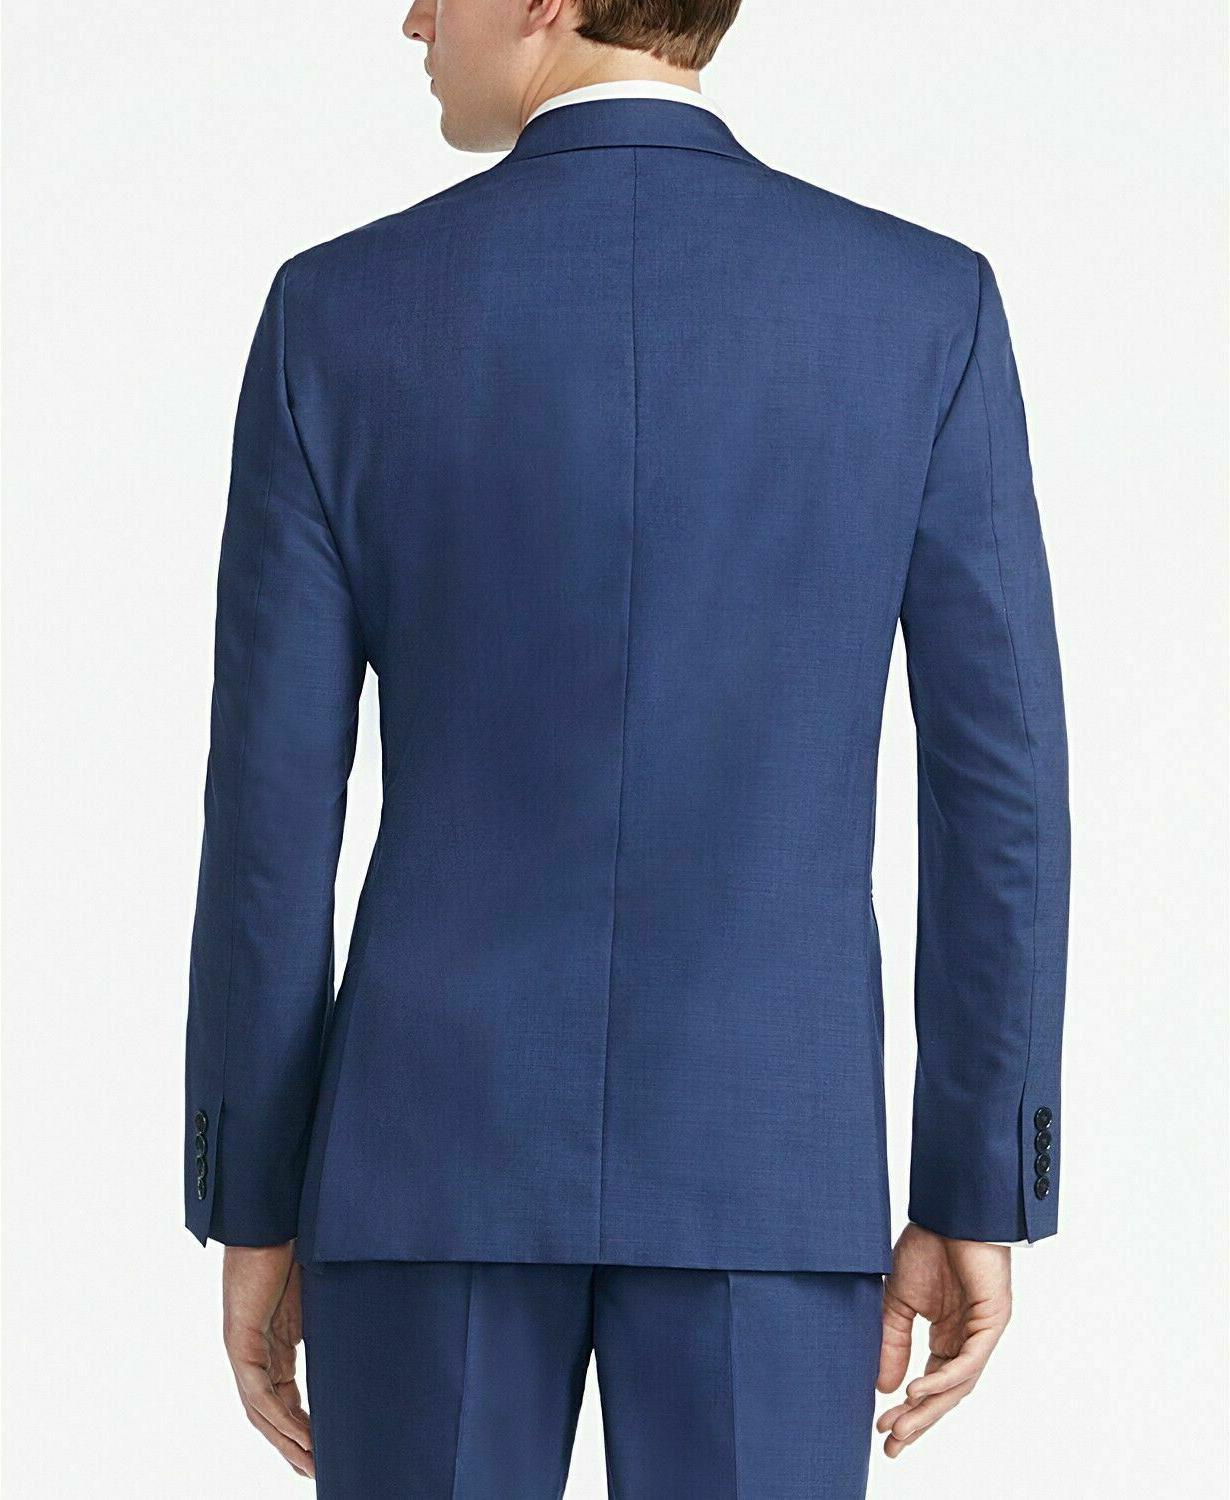 CALVIN 10042 100% Slim Fit Blue Suit 30L